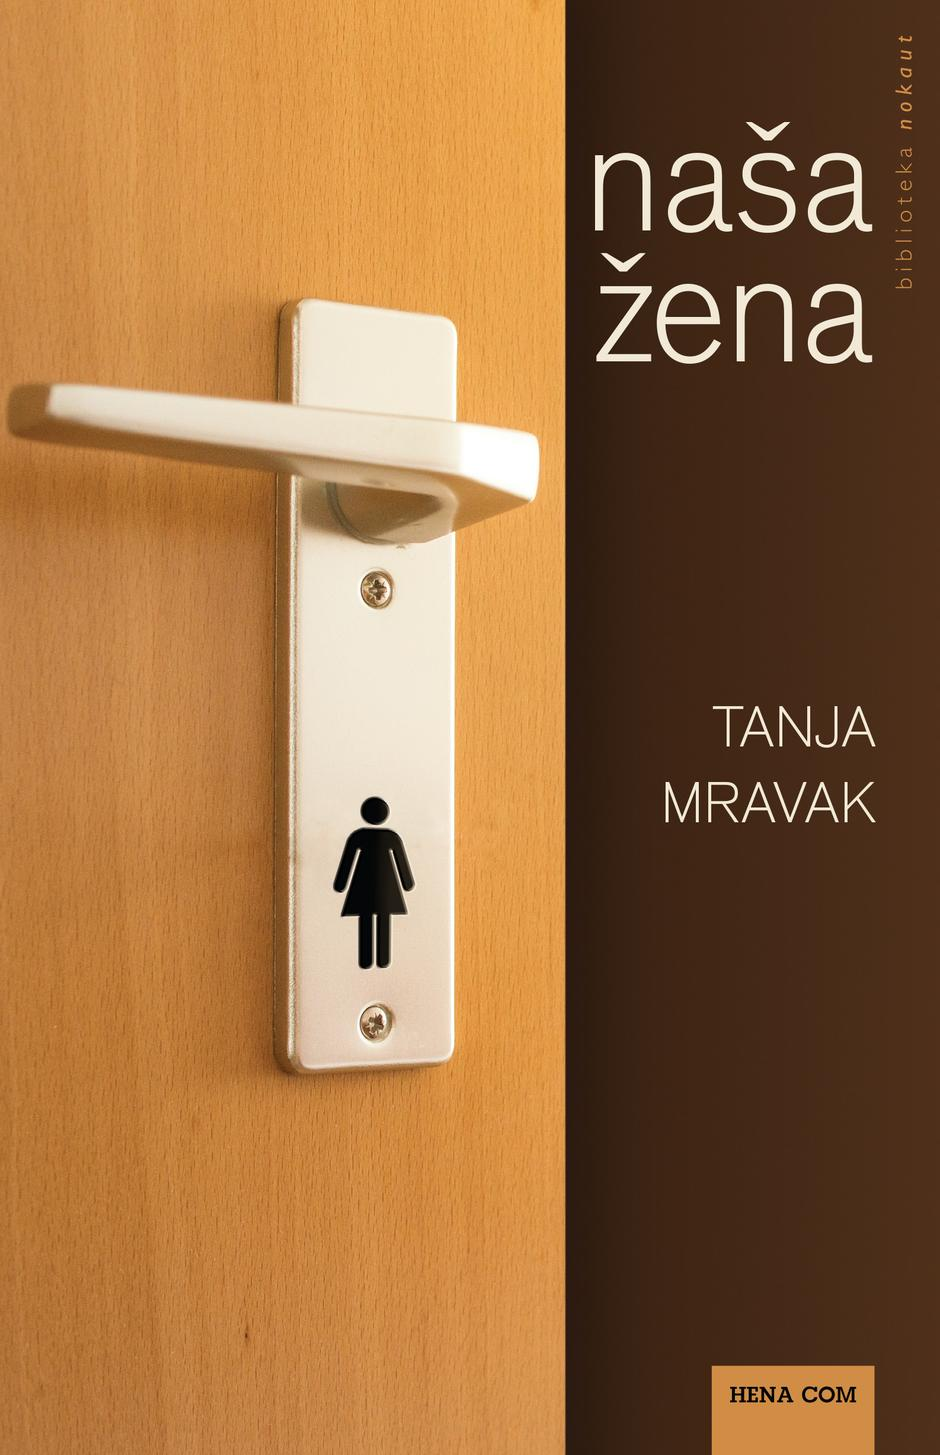 Tanja Mravak | Author: PROMO